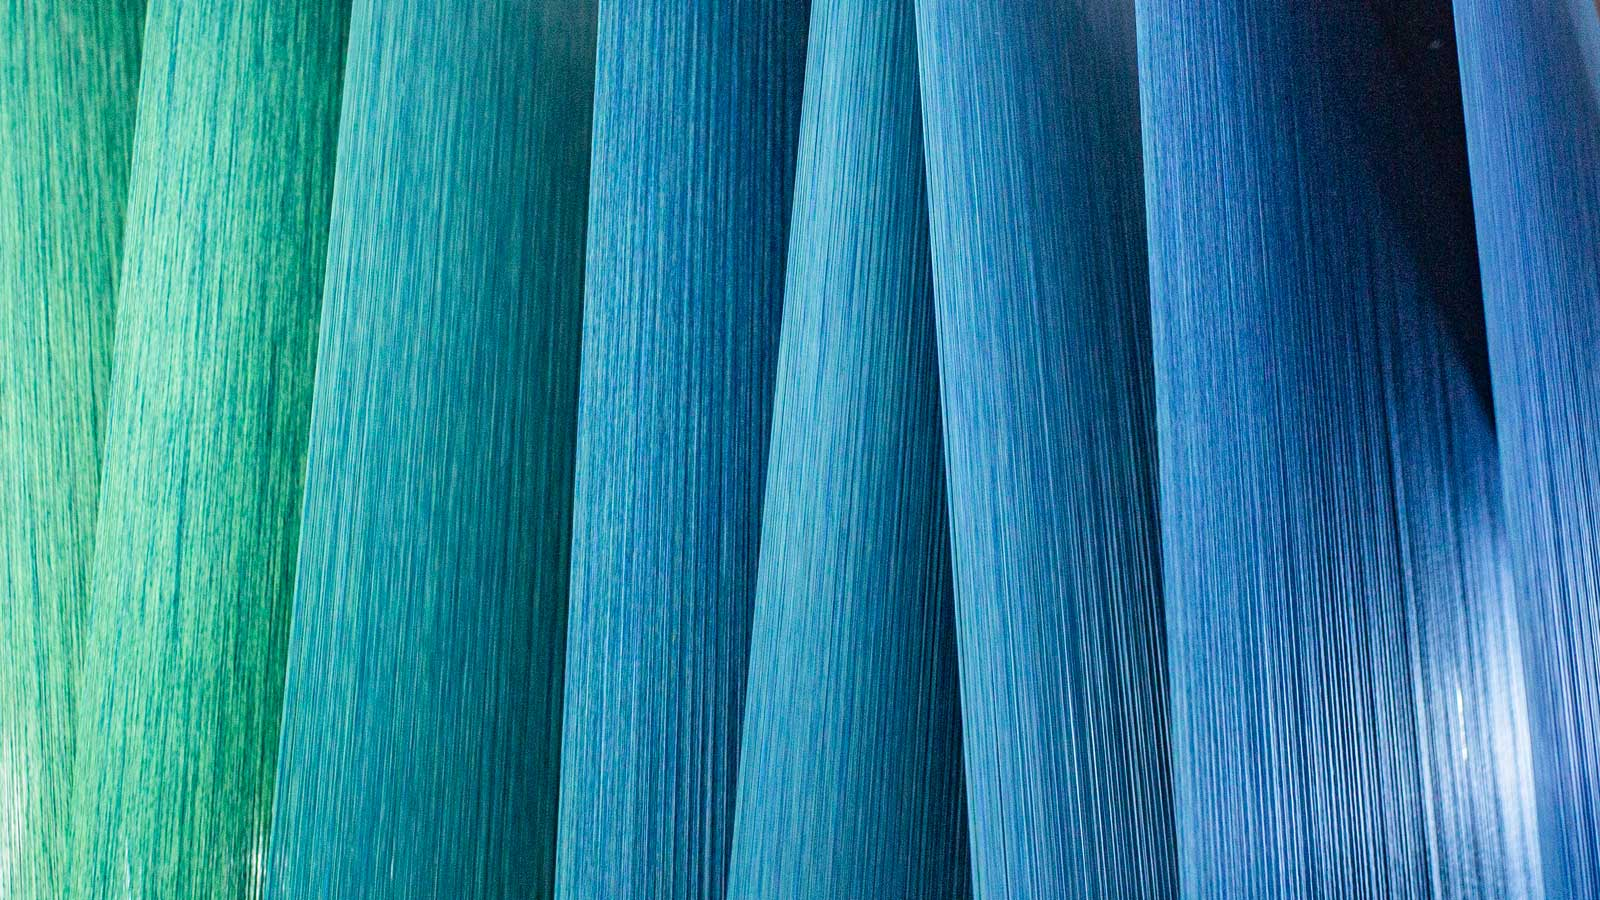 Green and blue gradient from yarns being dyed in indigo